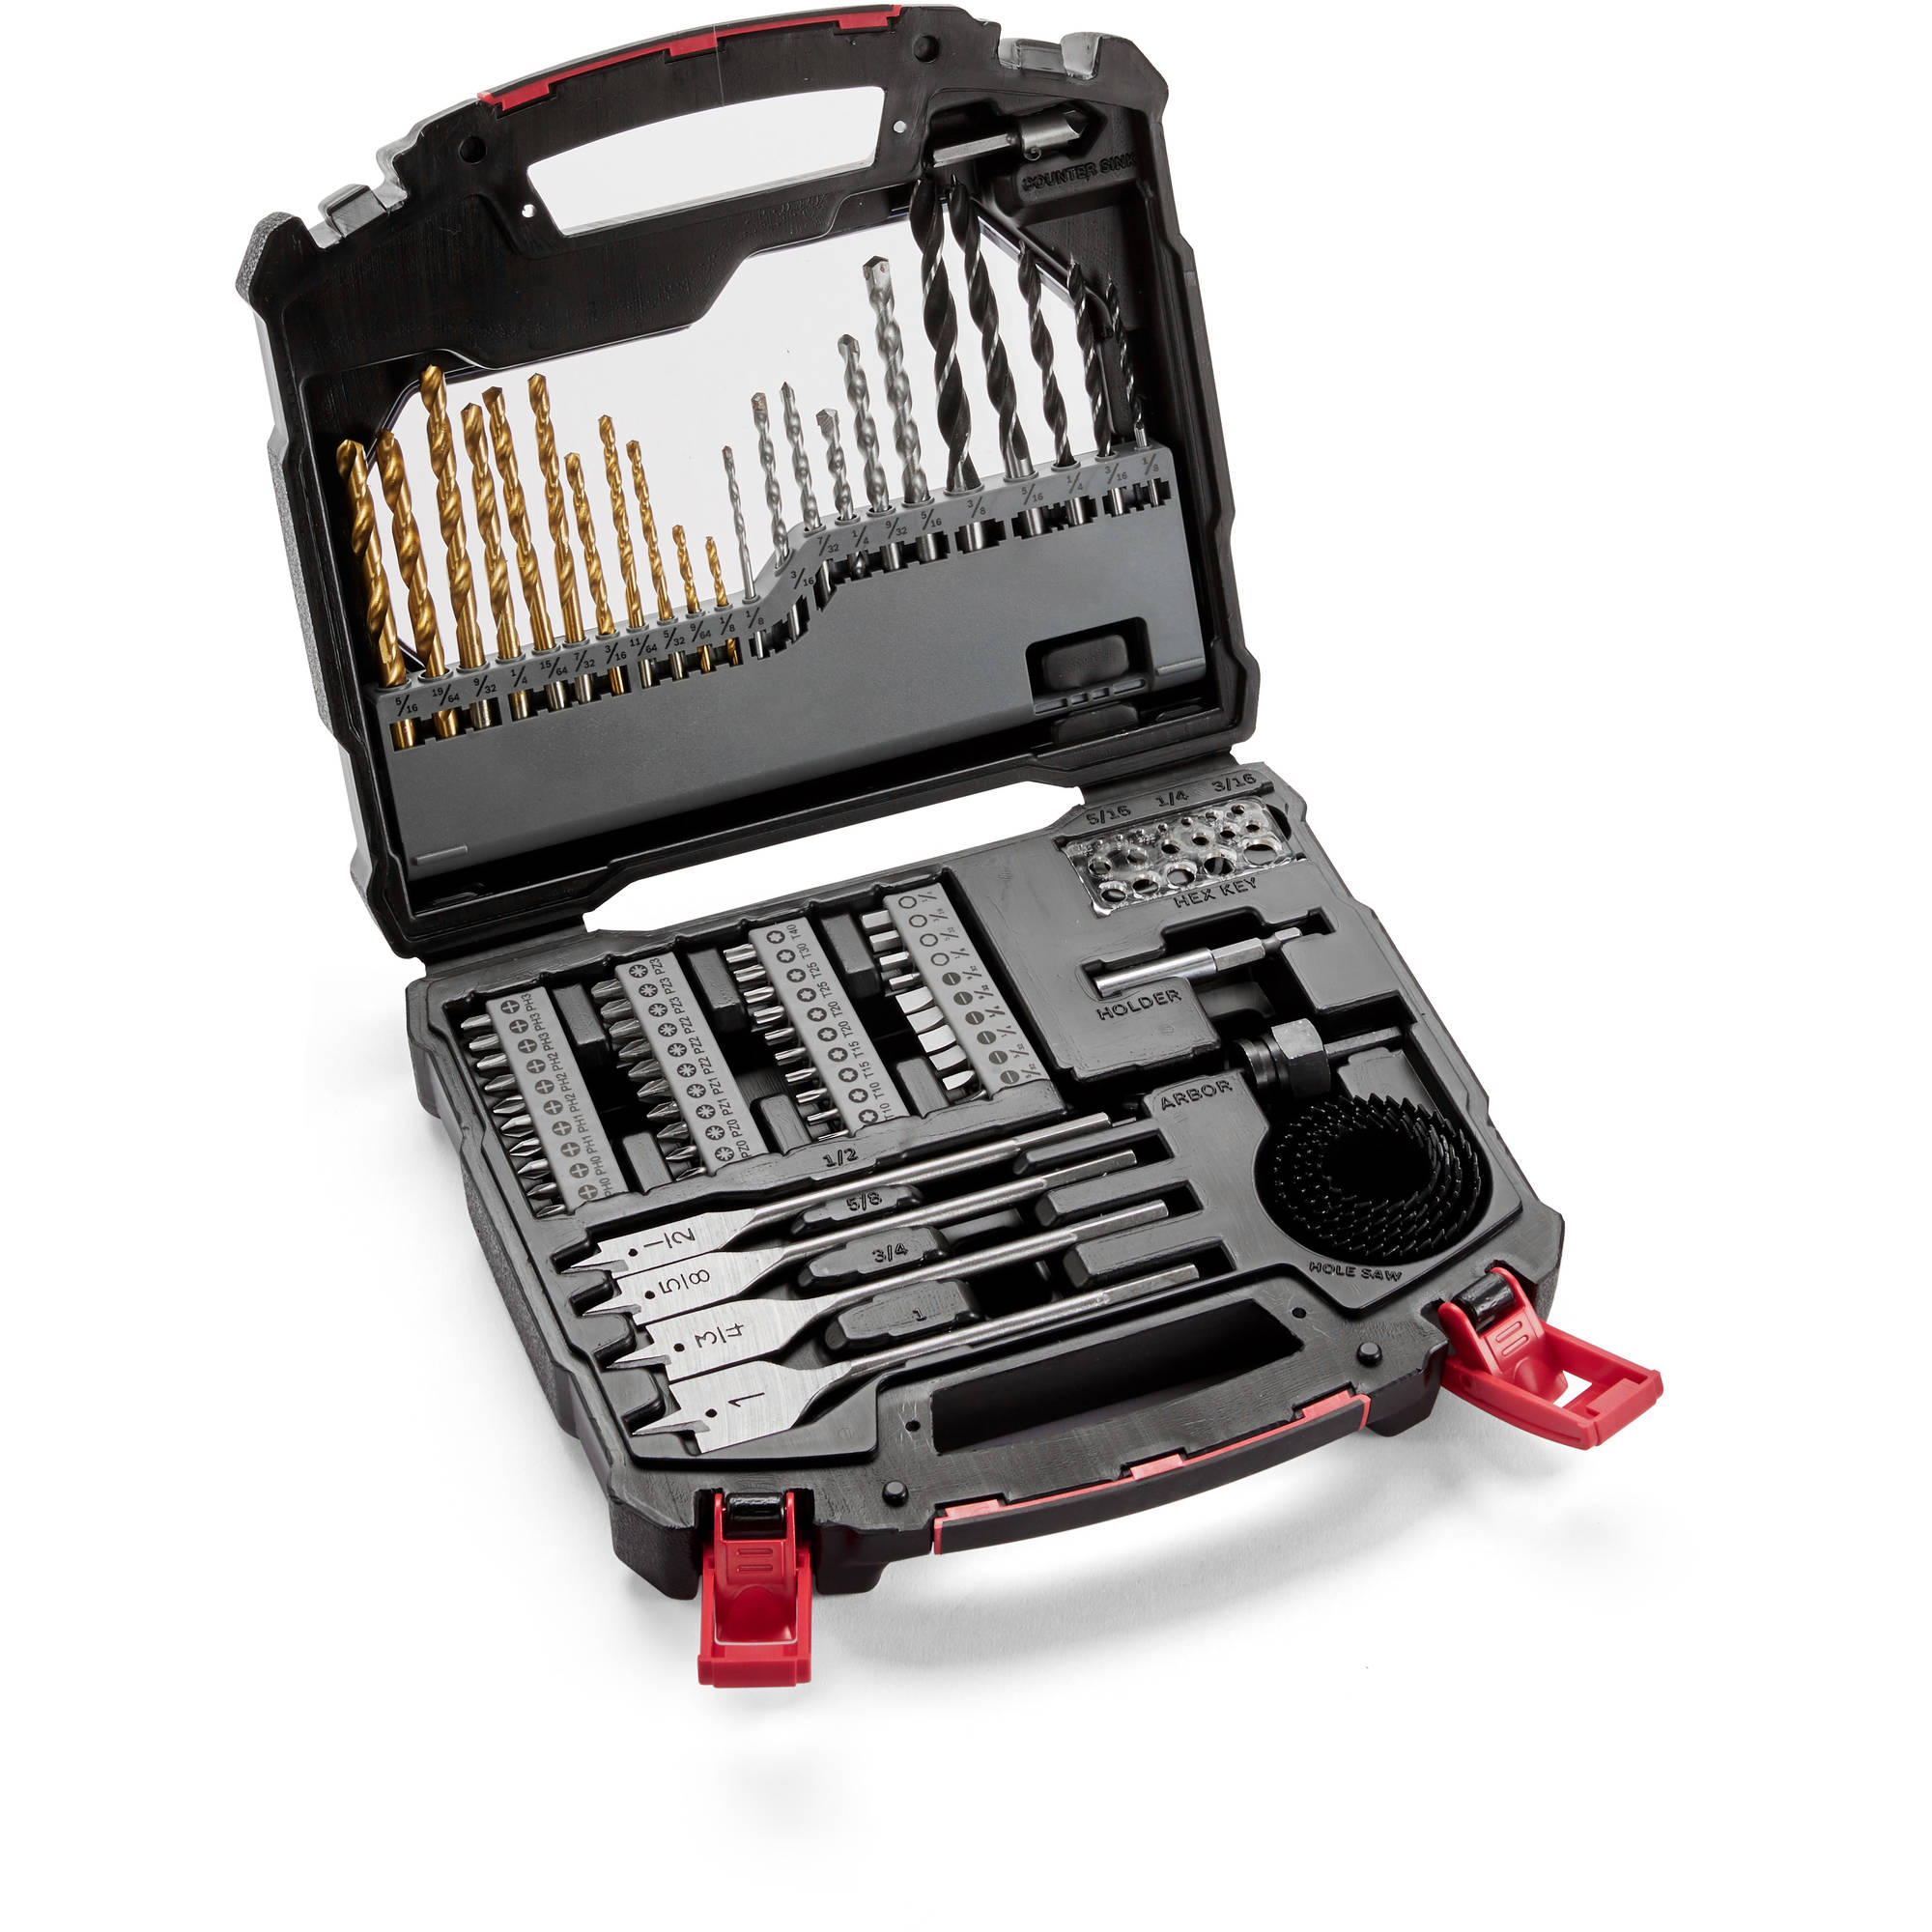 Hyper Tough 78-Piece Drill and Bits Set